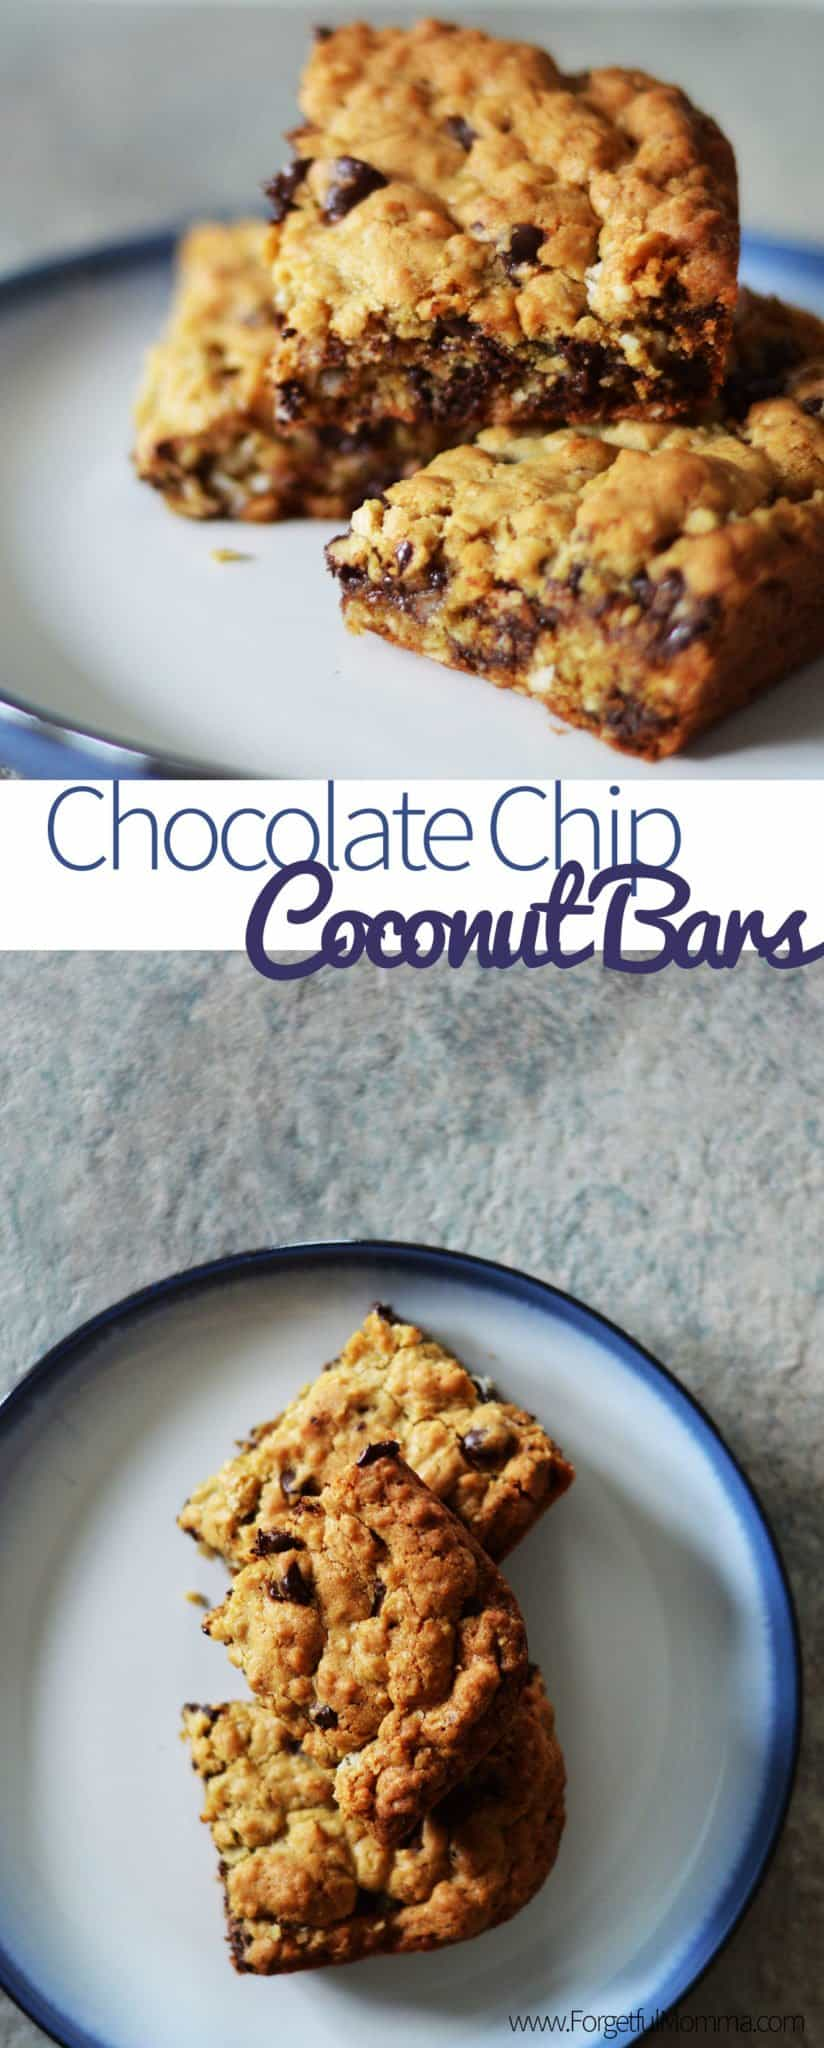 Chocolate Chip Coconut Bars